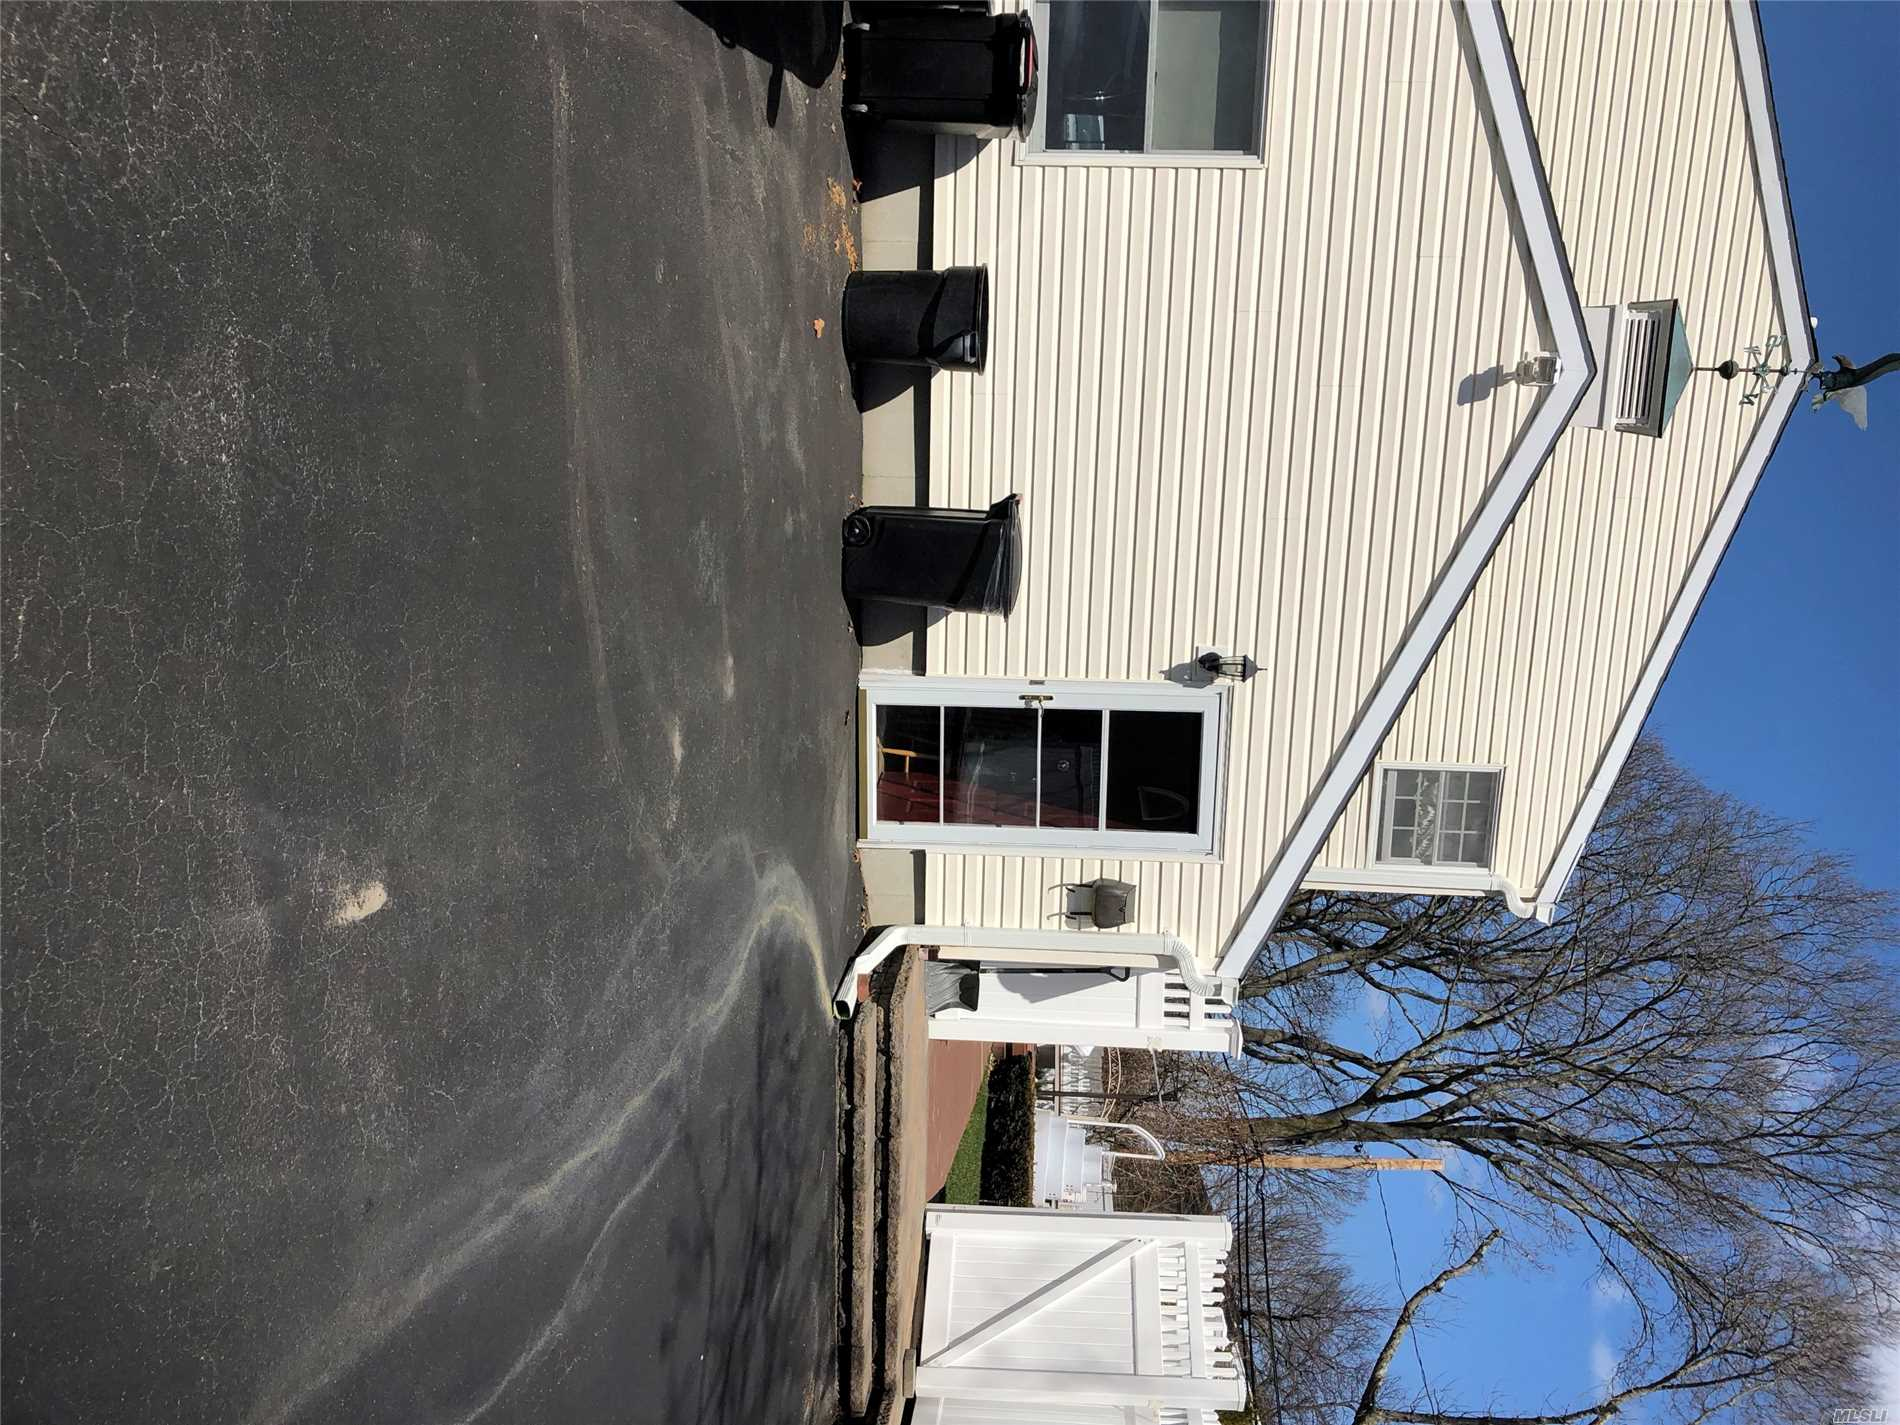 37 Victor Dr - E. Northport, New York